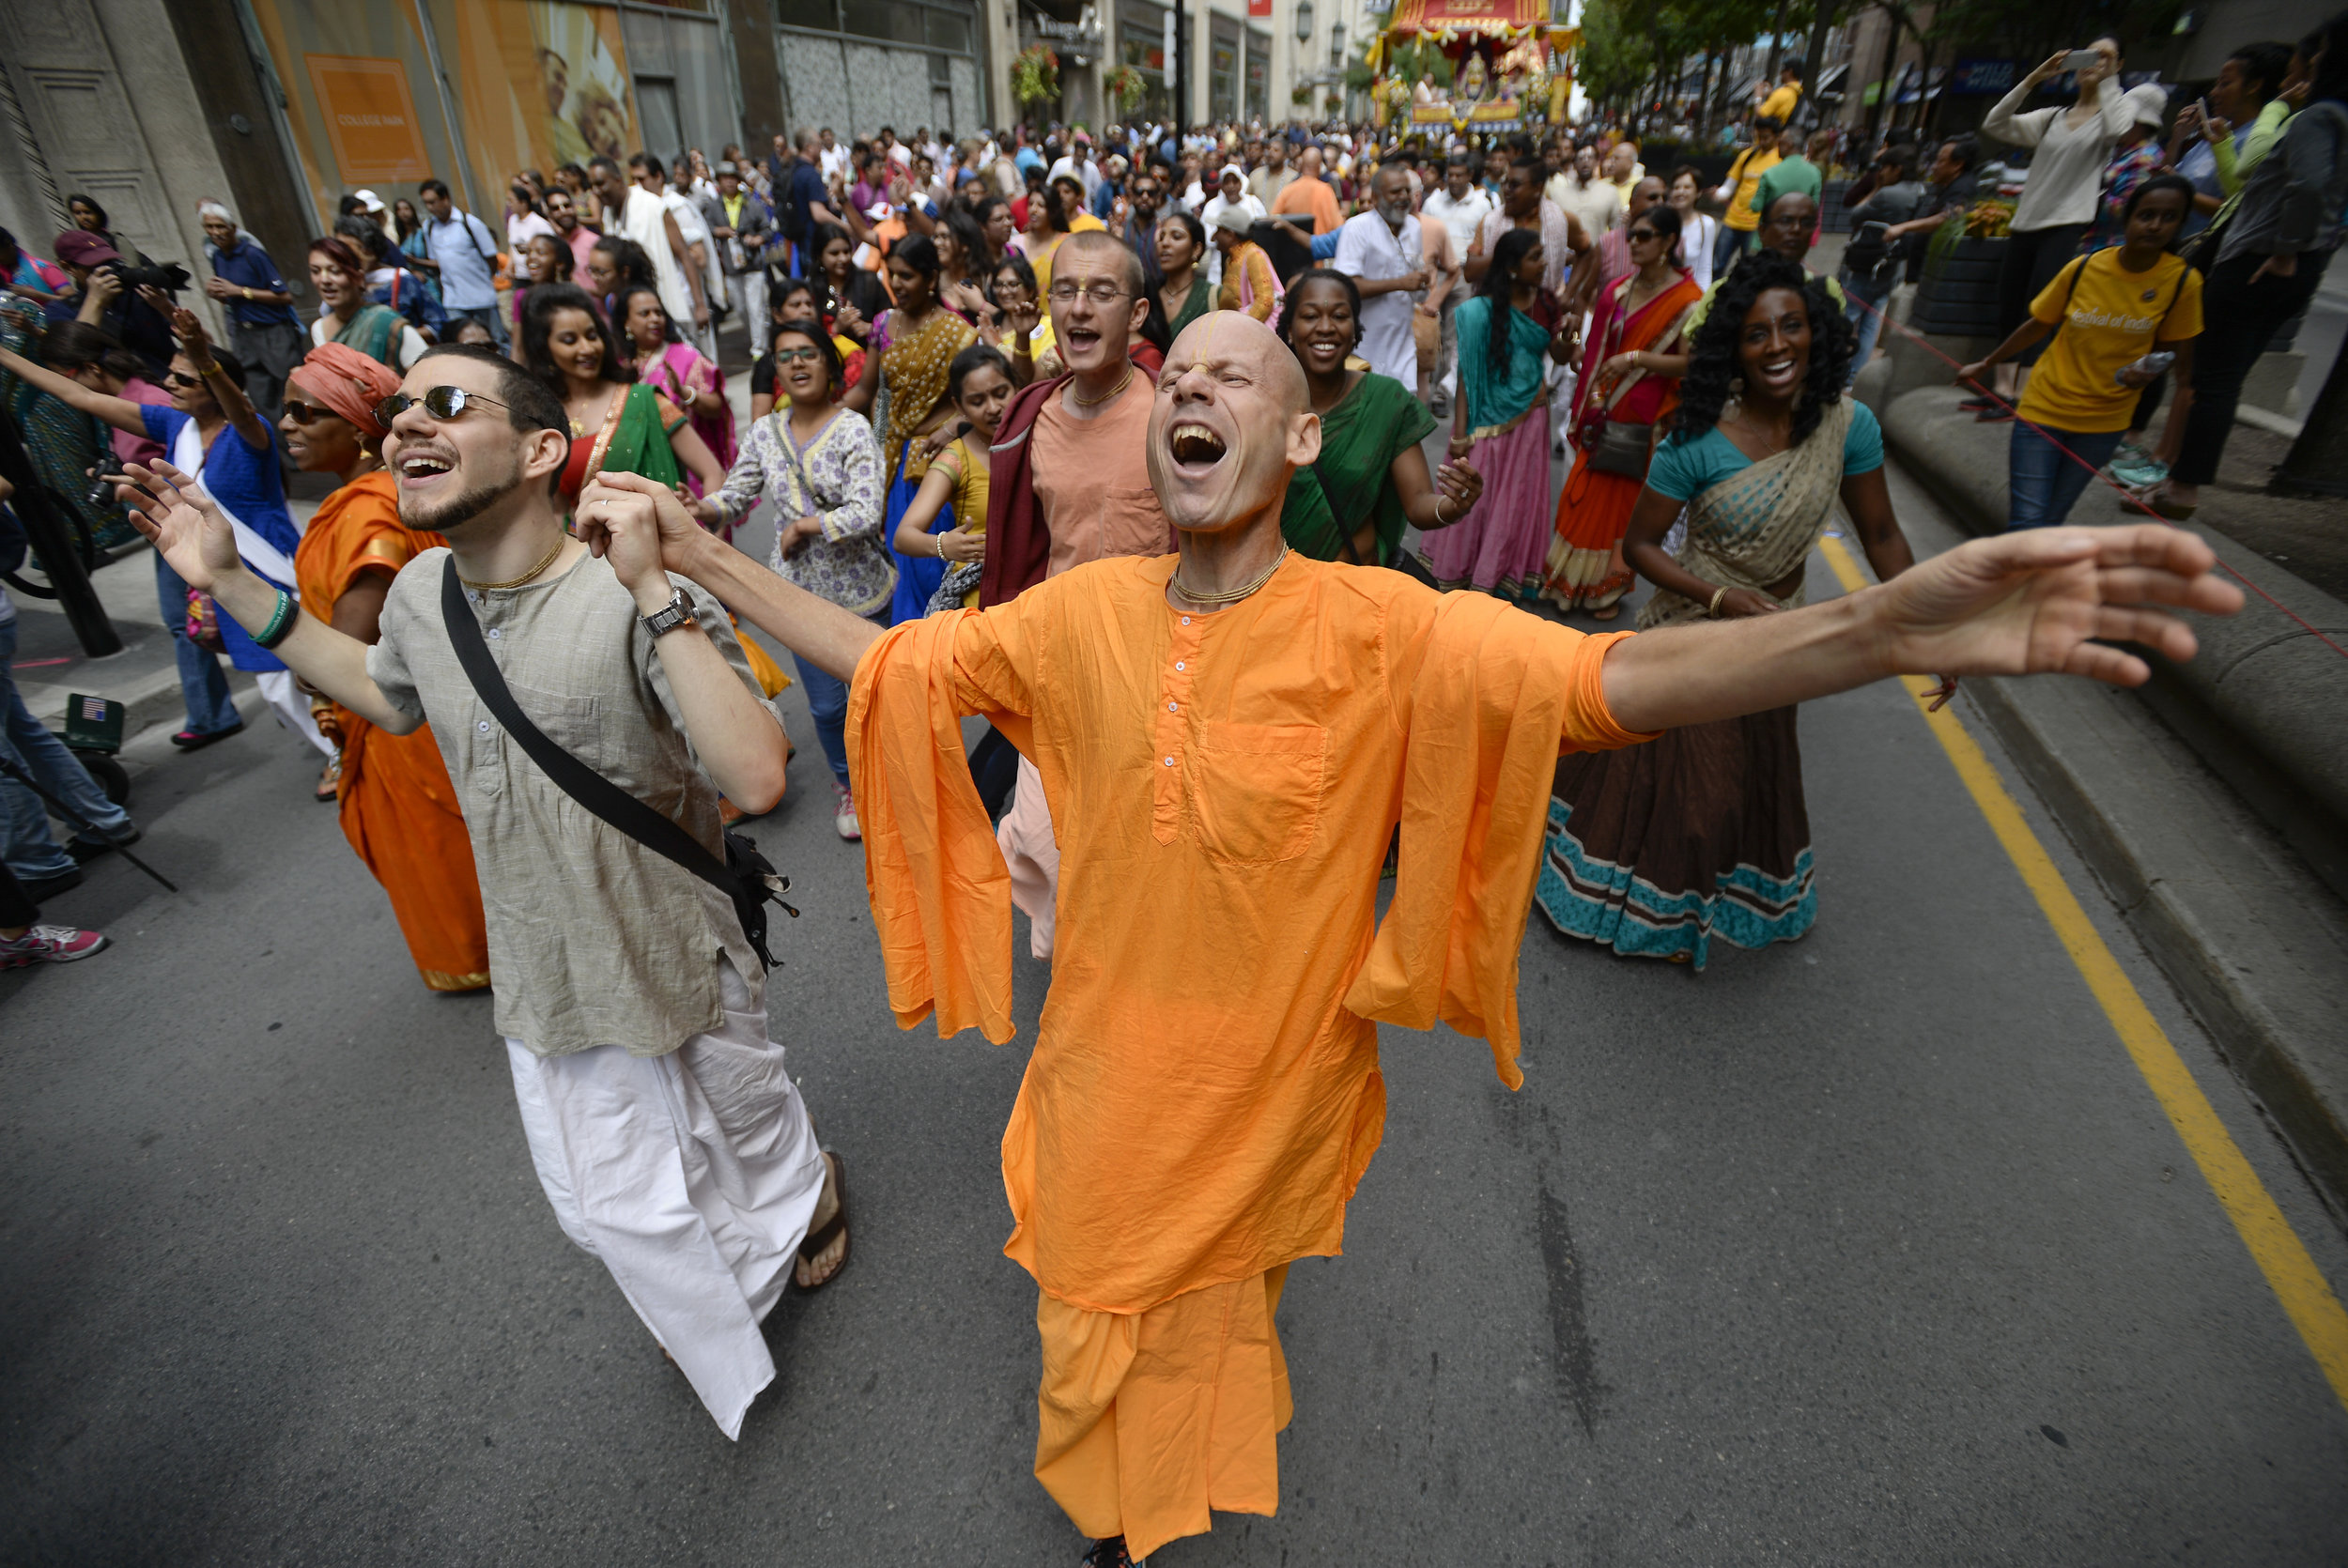 Hundreds of people paraded down Yonge St. during the 44th annual International Society for Krishna Consciousness religious and cultural parade  in Toronto, Ont. on July 16, 2016.